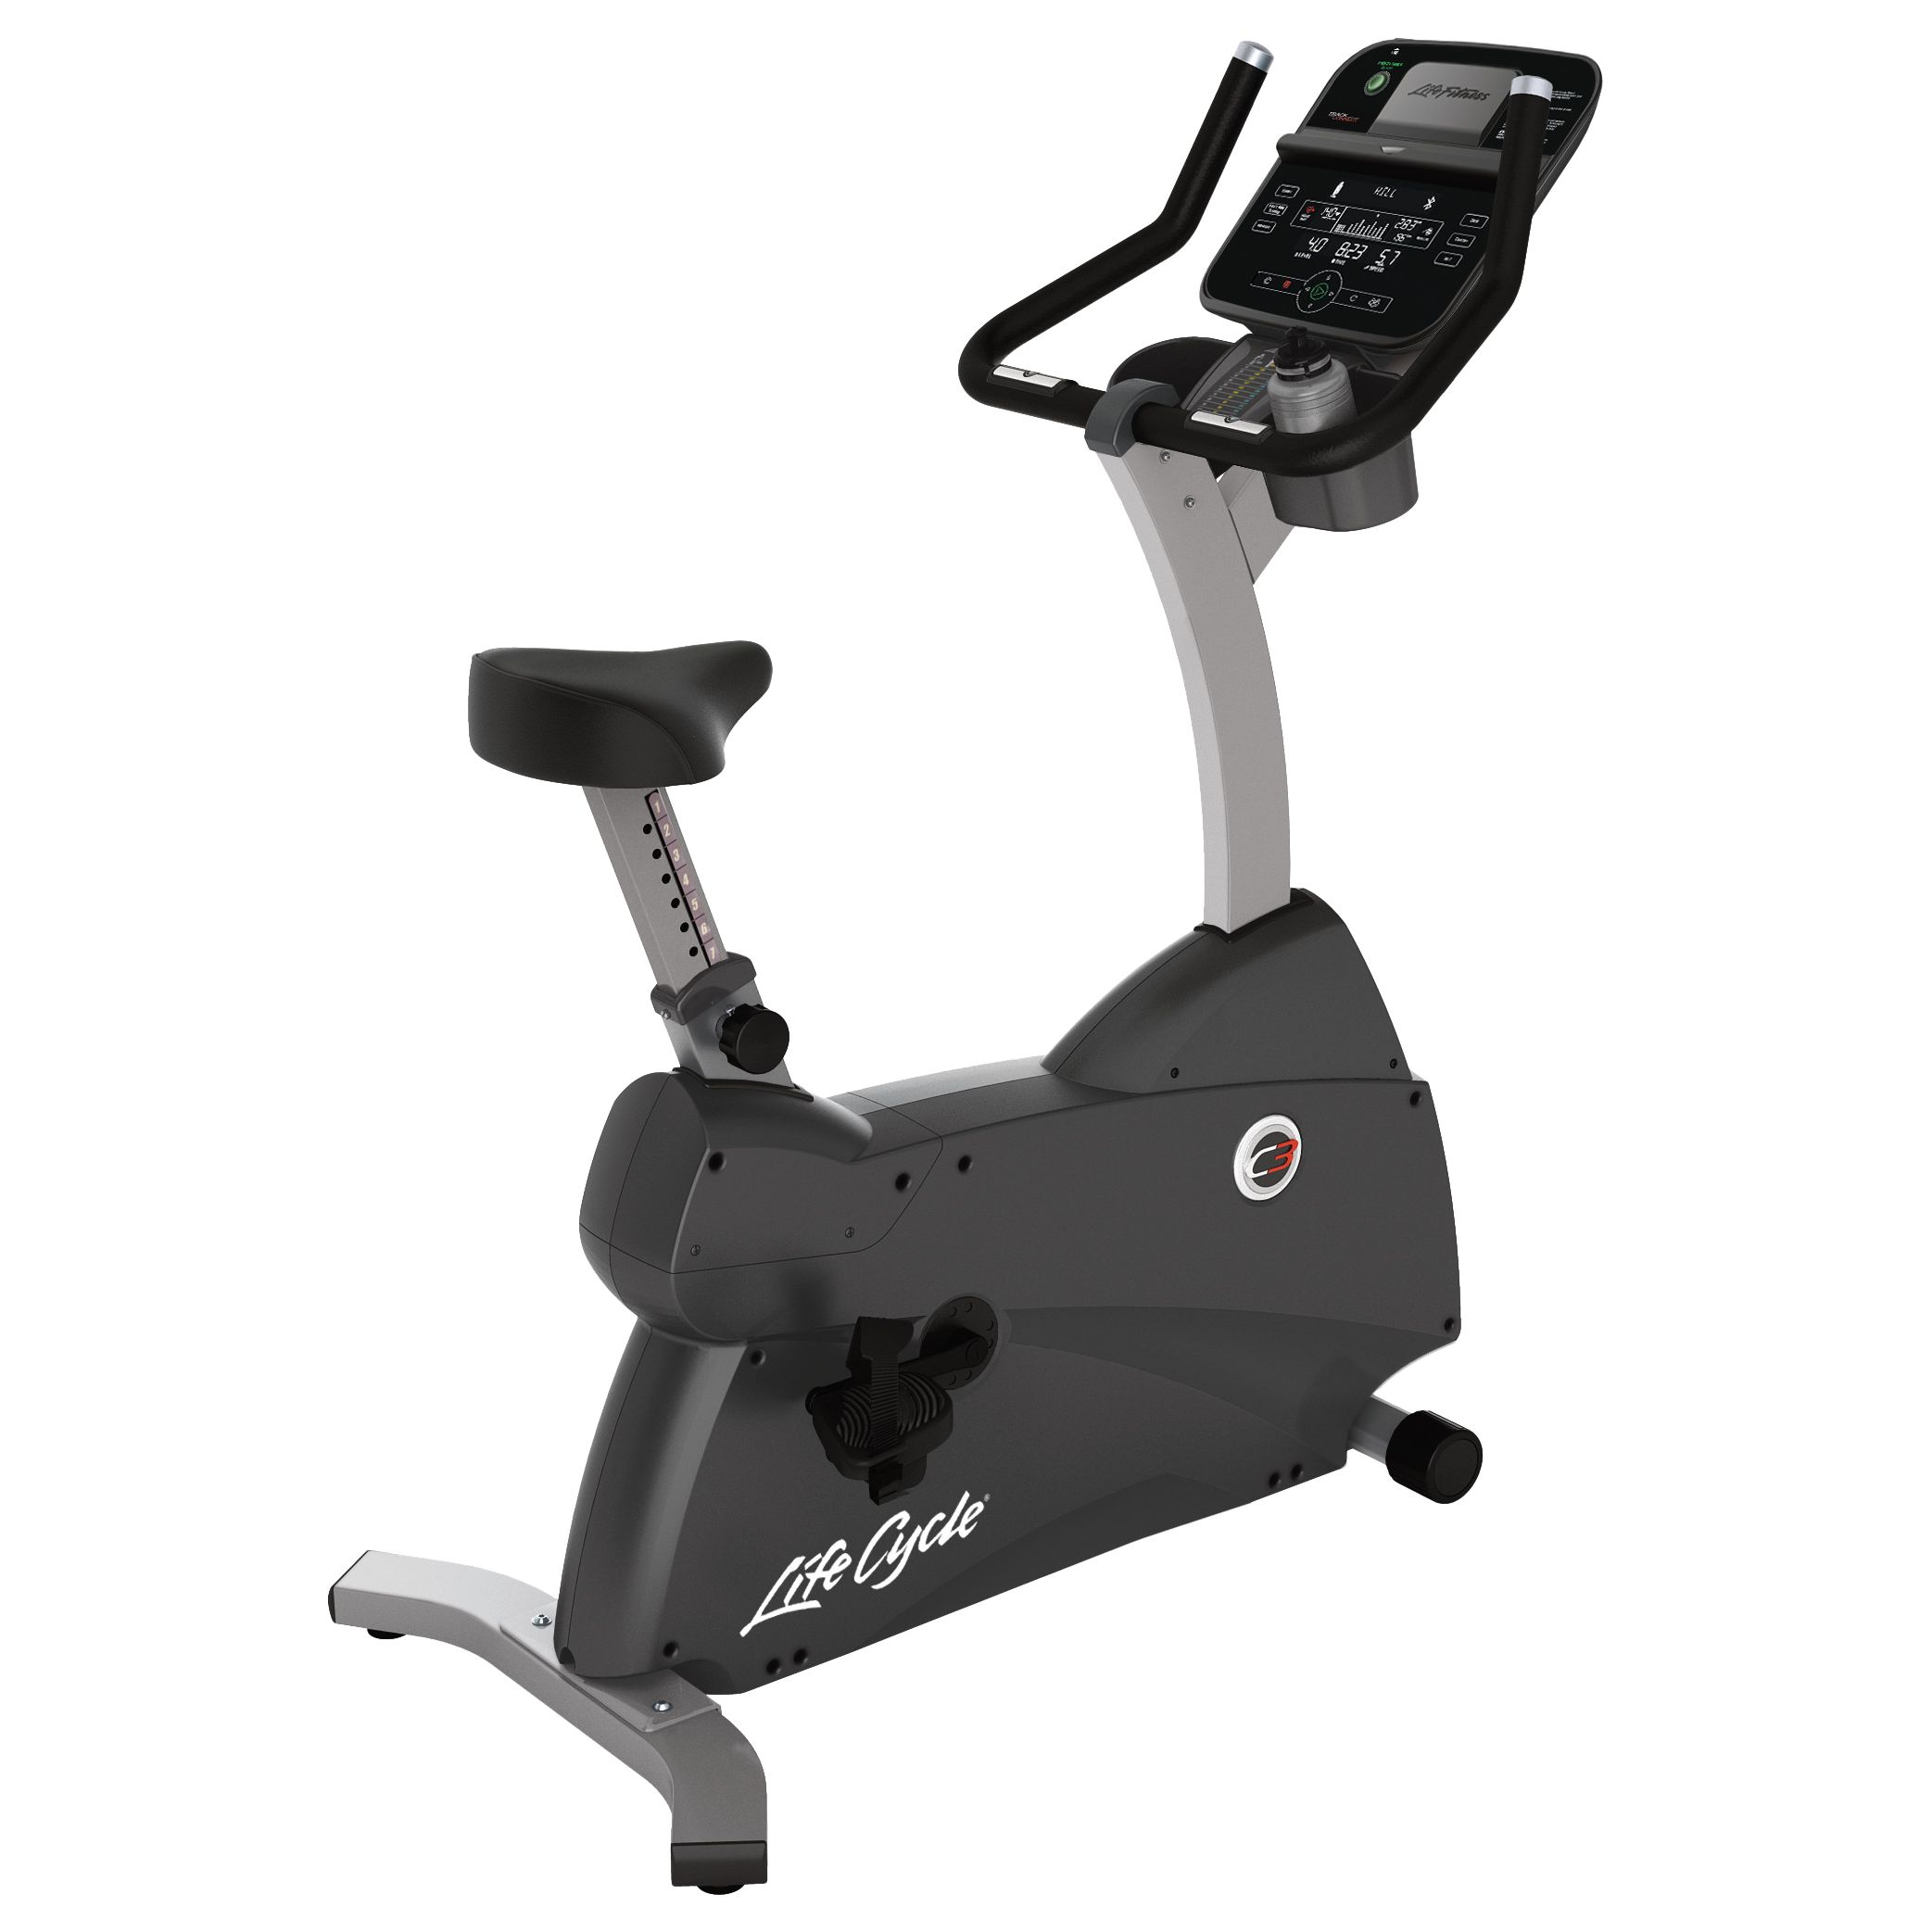 Life Fitness Life Fitness Lifecycle C3 Upright Exercise Bike with Track Connect Console